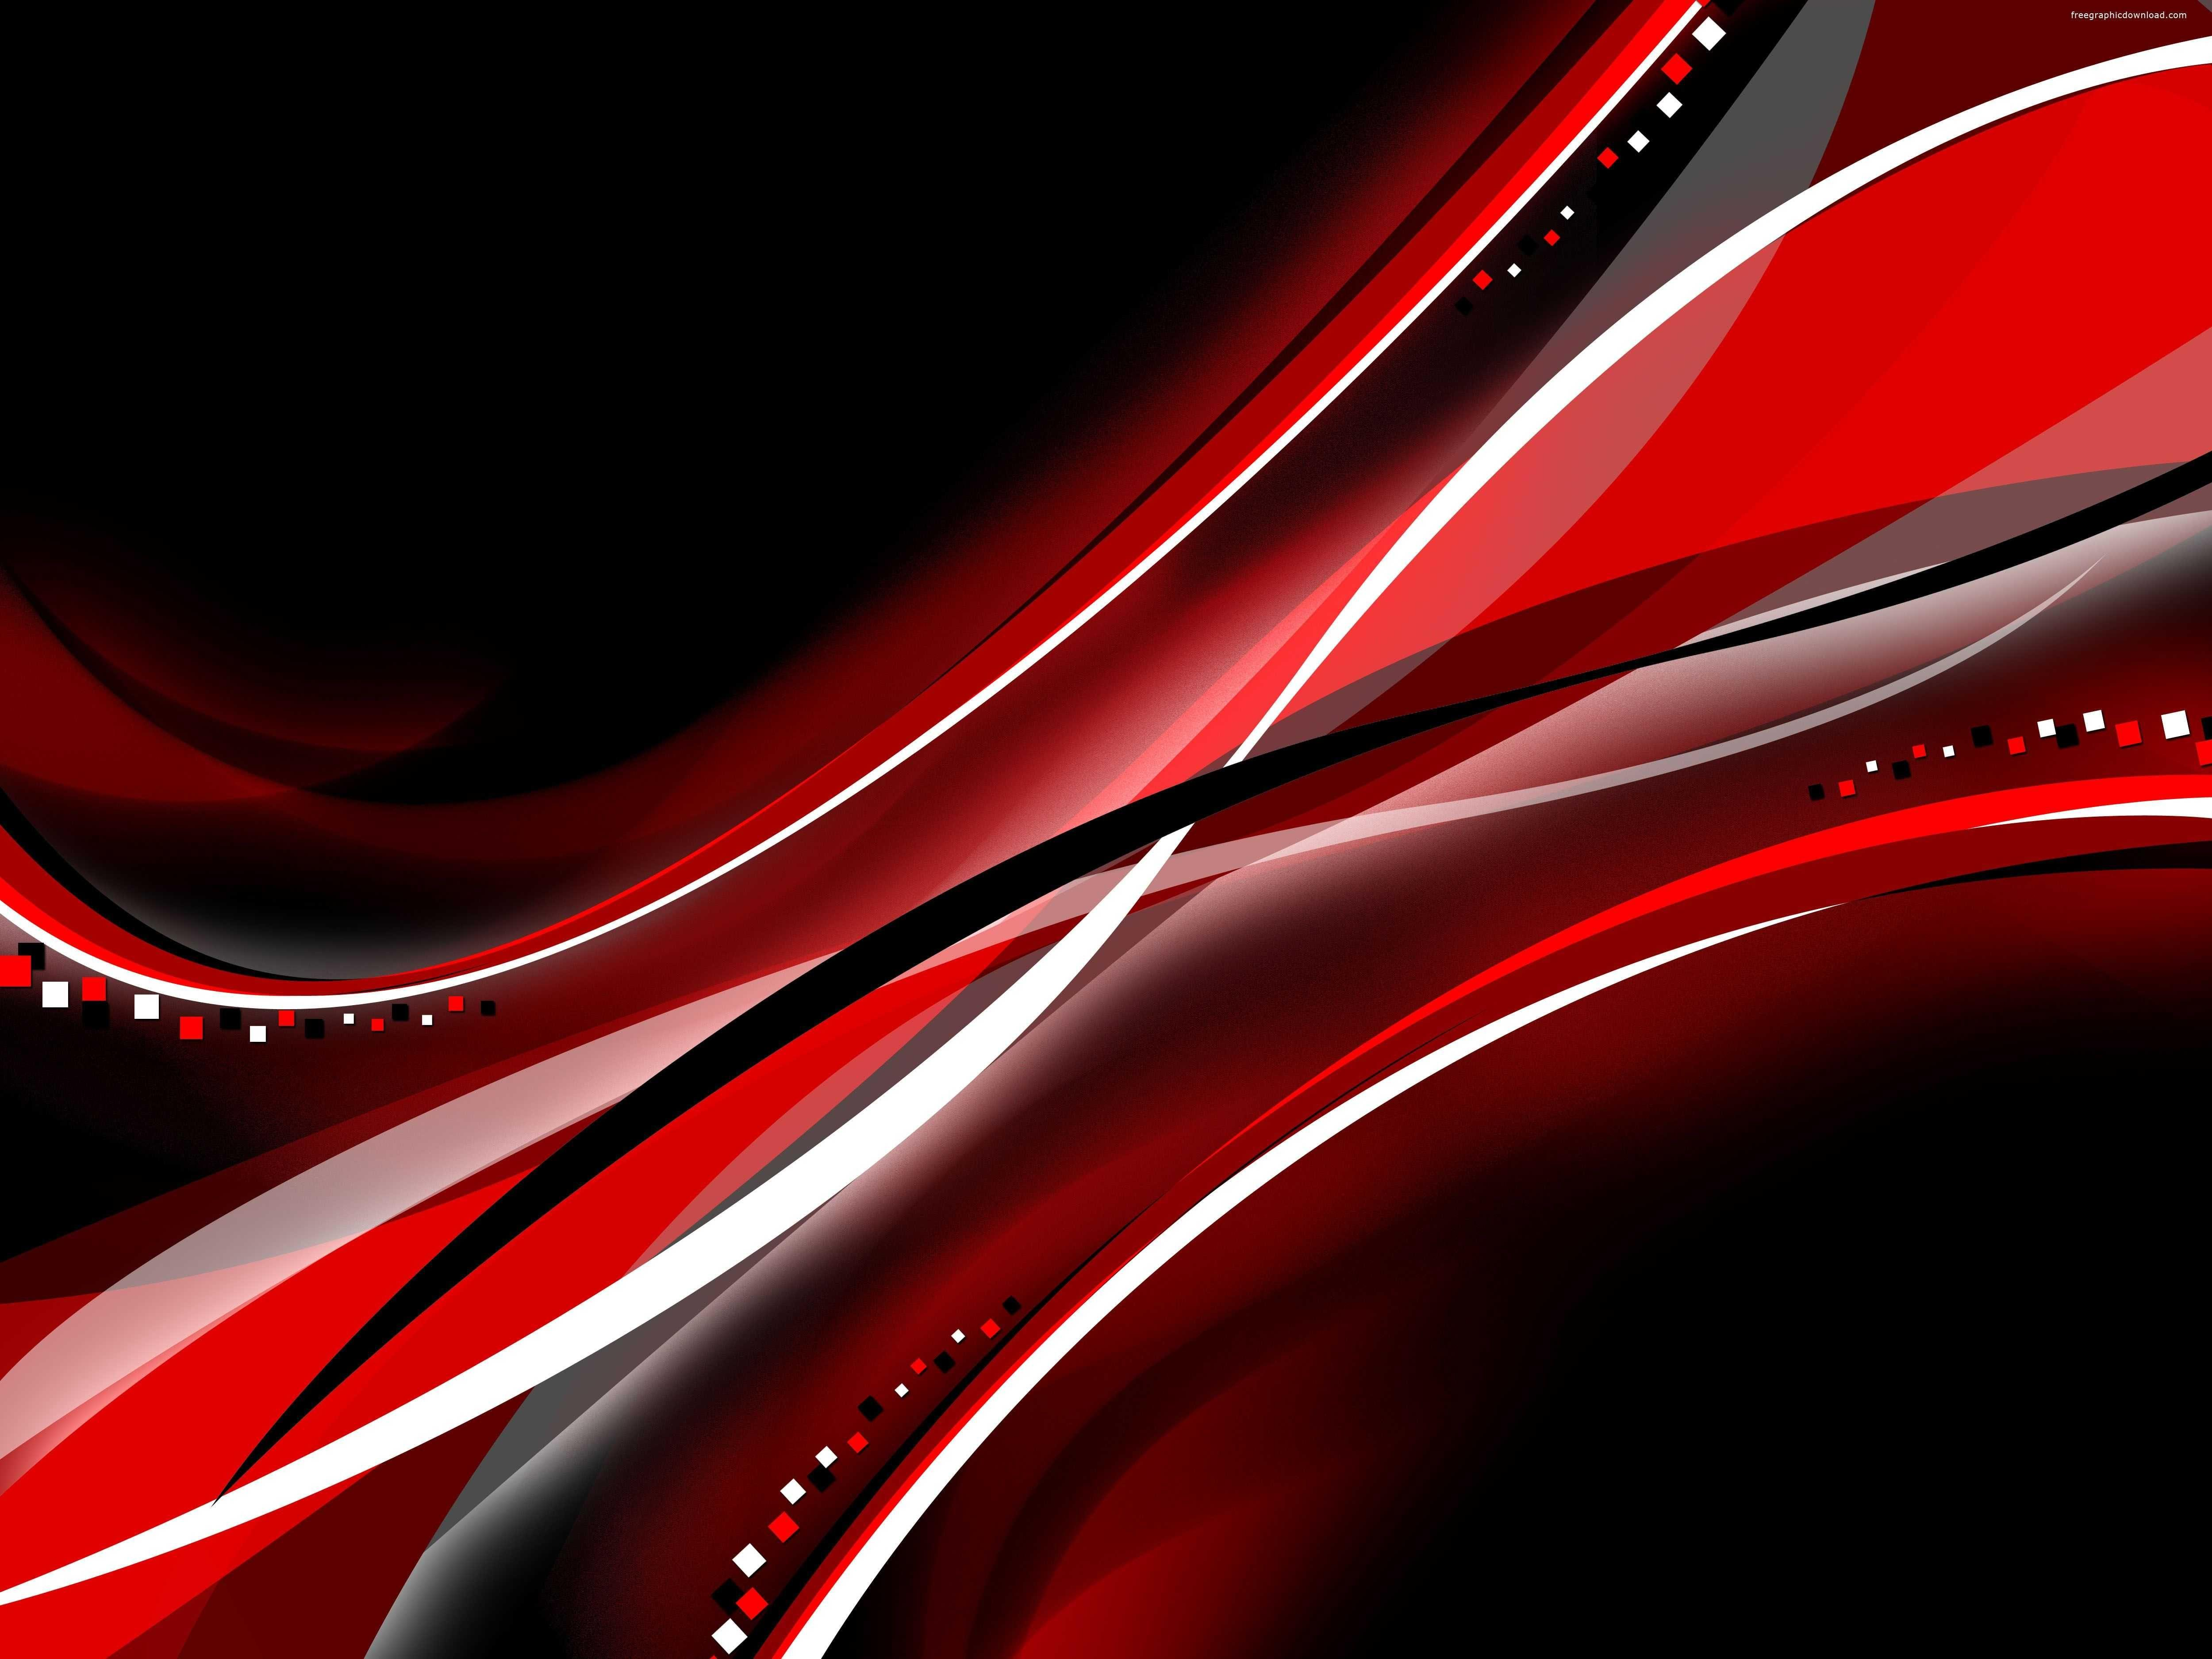 Backgrounds Of Black Red Abstract Wallpaper White And Hd Pics Pc